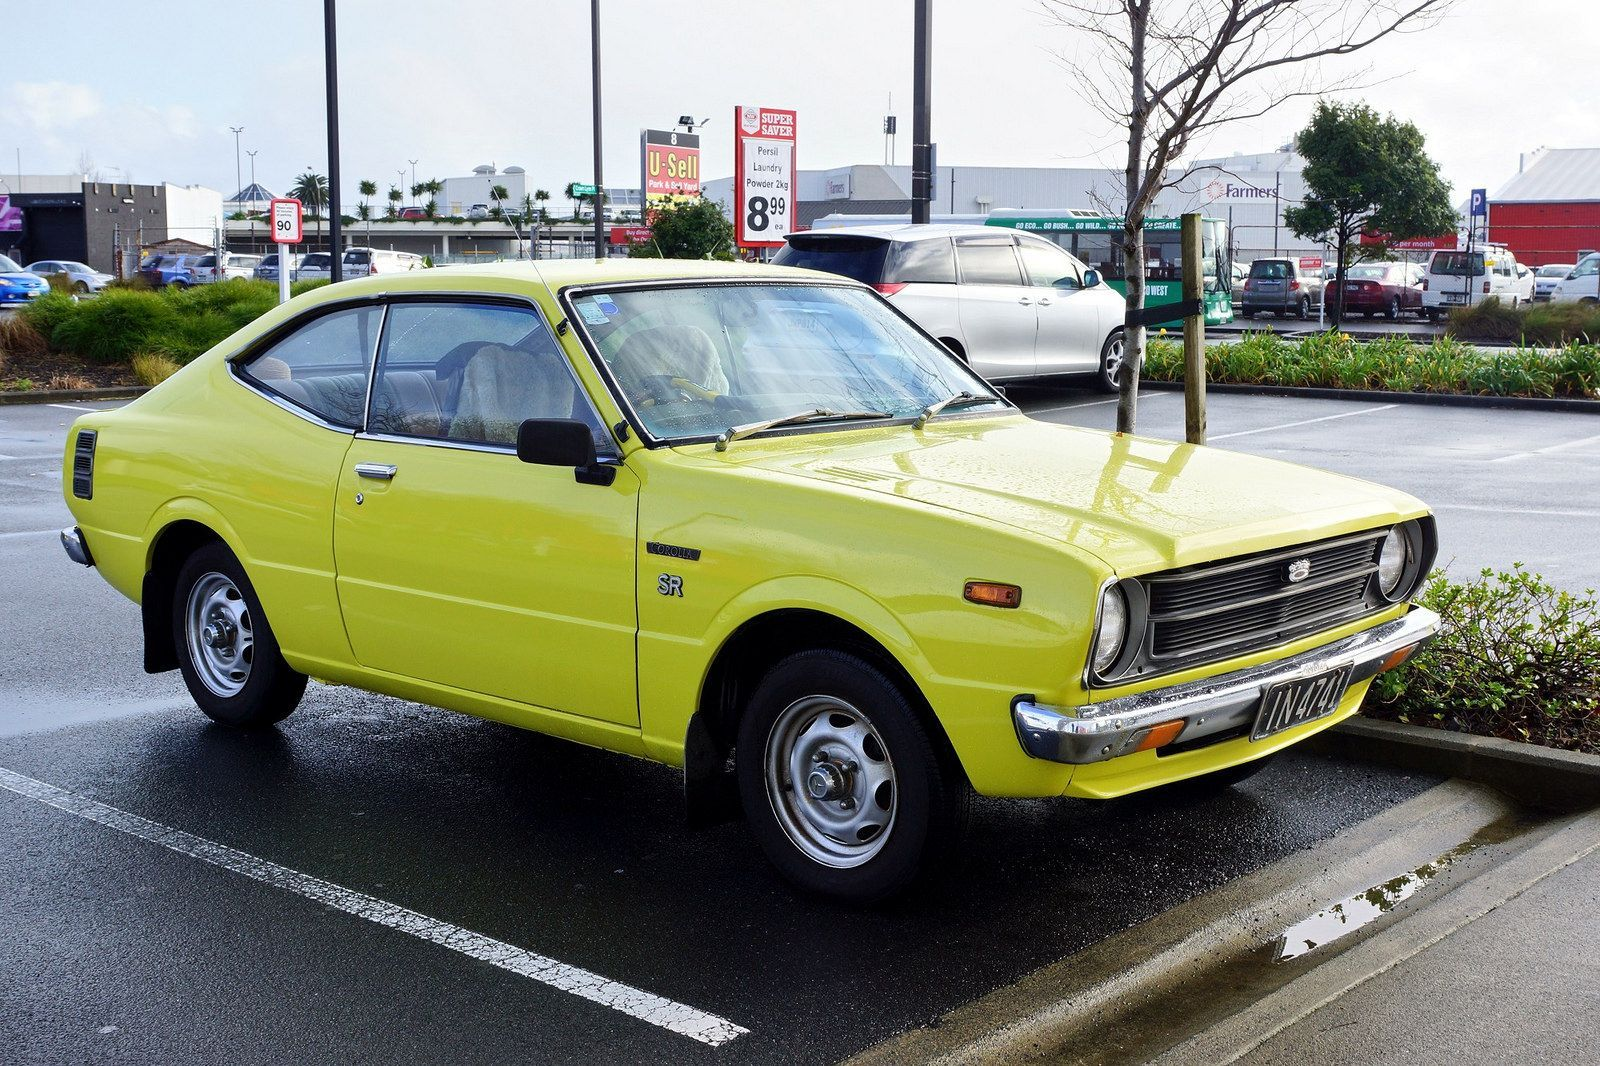 1977 Toyota Corolla Sr At The Supermarket This Morning Auckland Nz Toyota Corolla Classic Cars Toyota